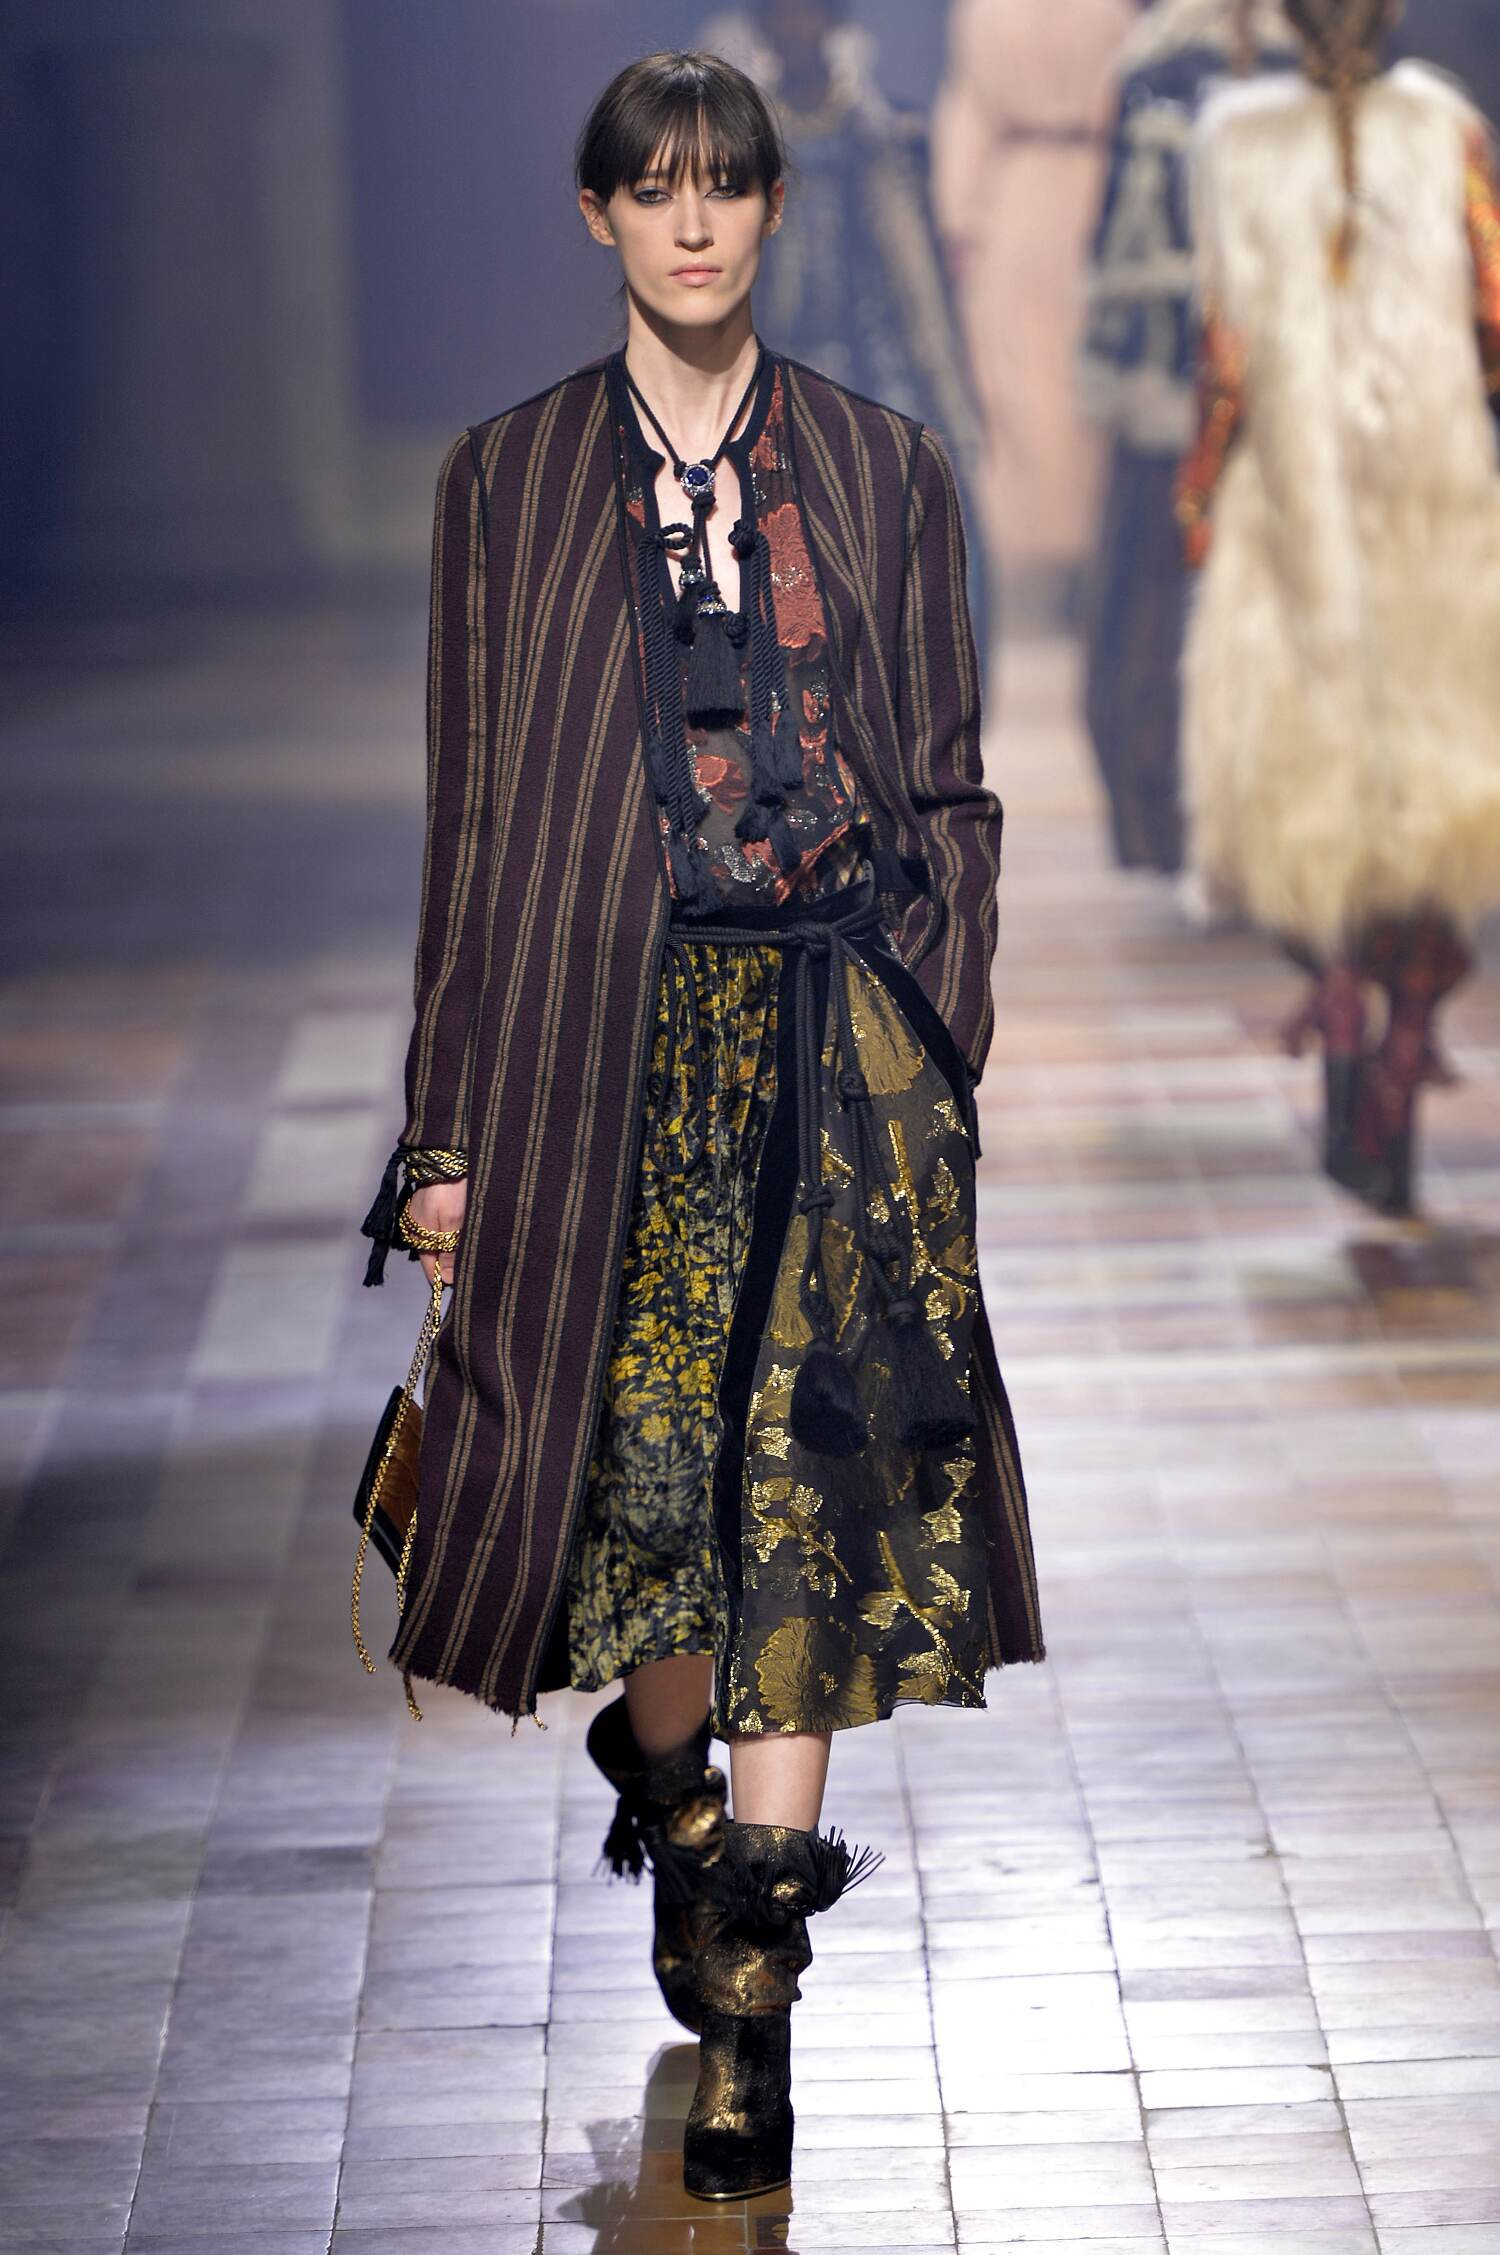 Winter Fashion Trends 2015 2016 Lanvin Collection